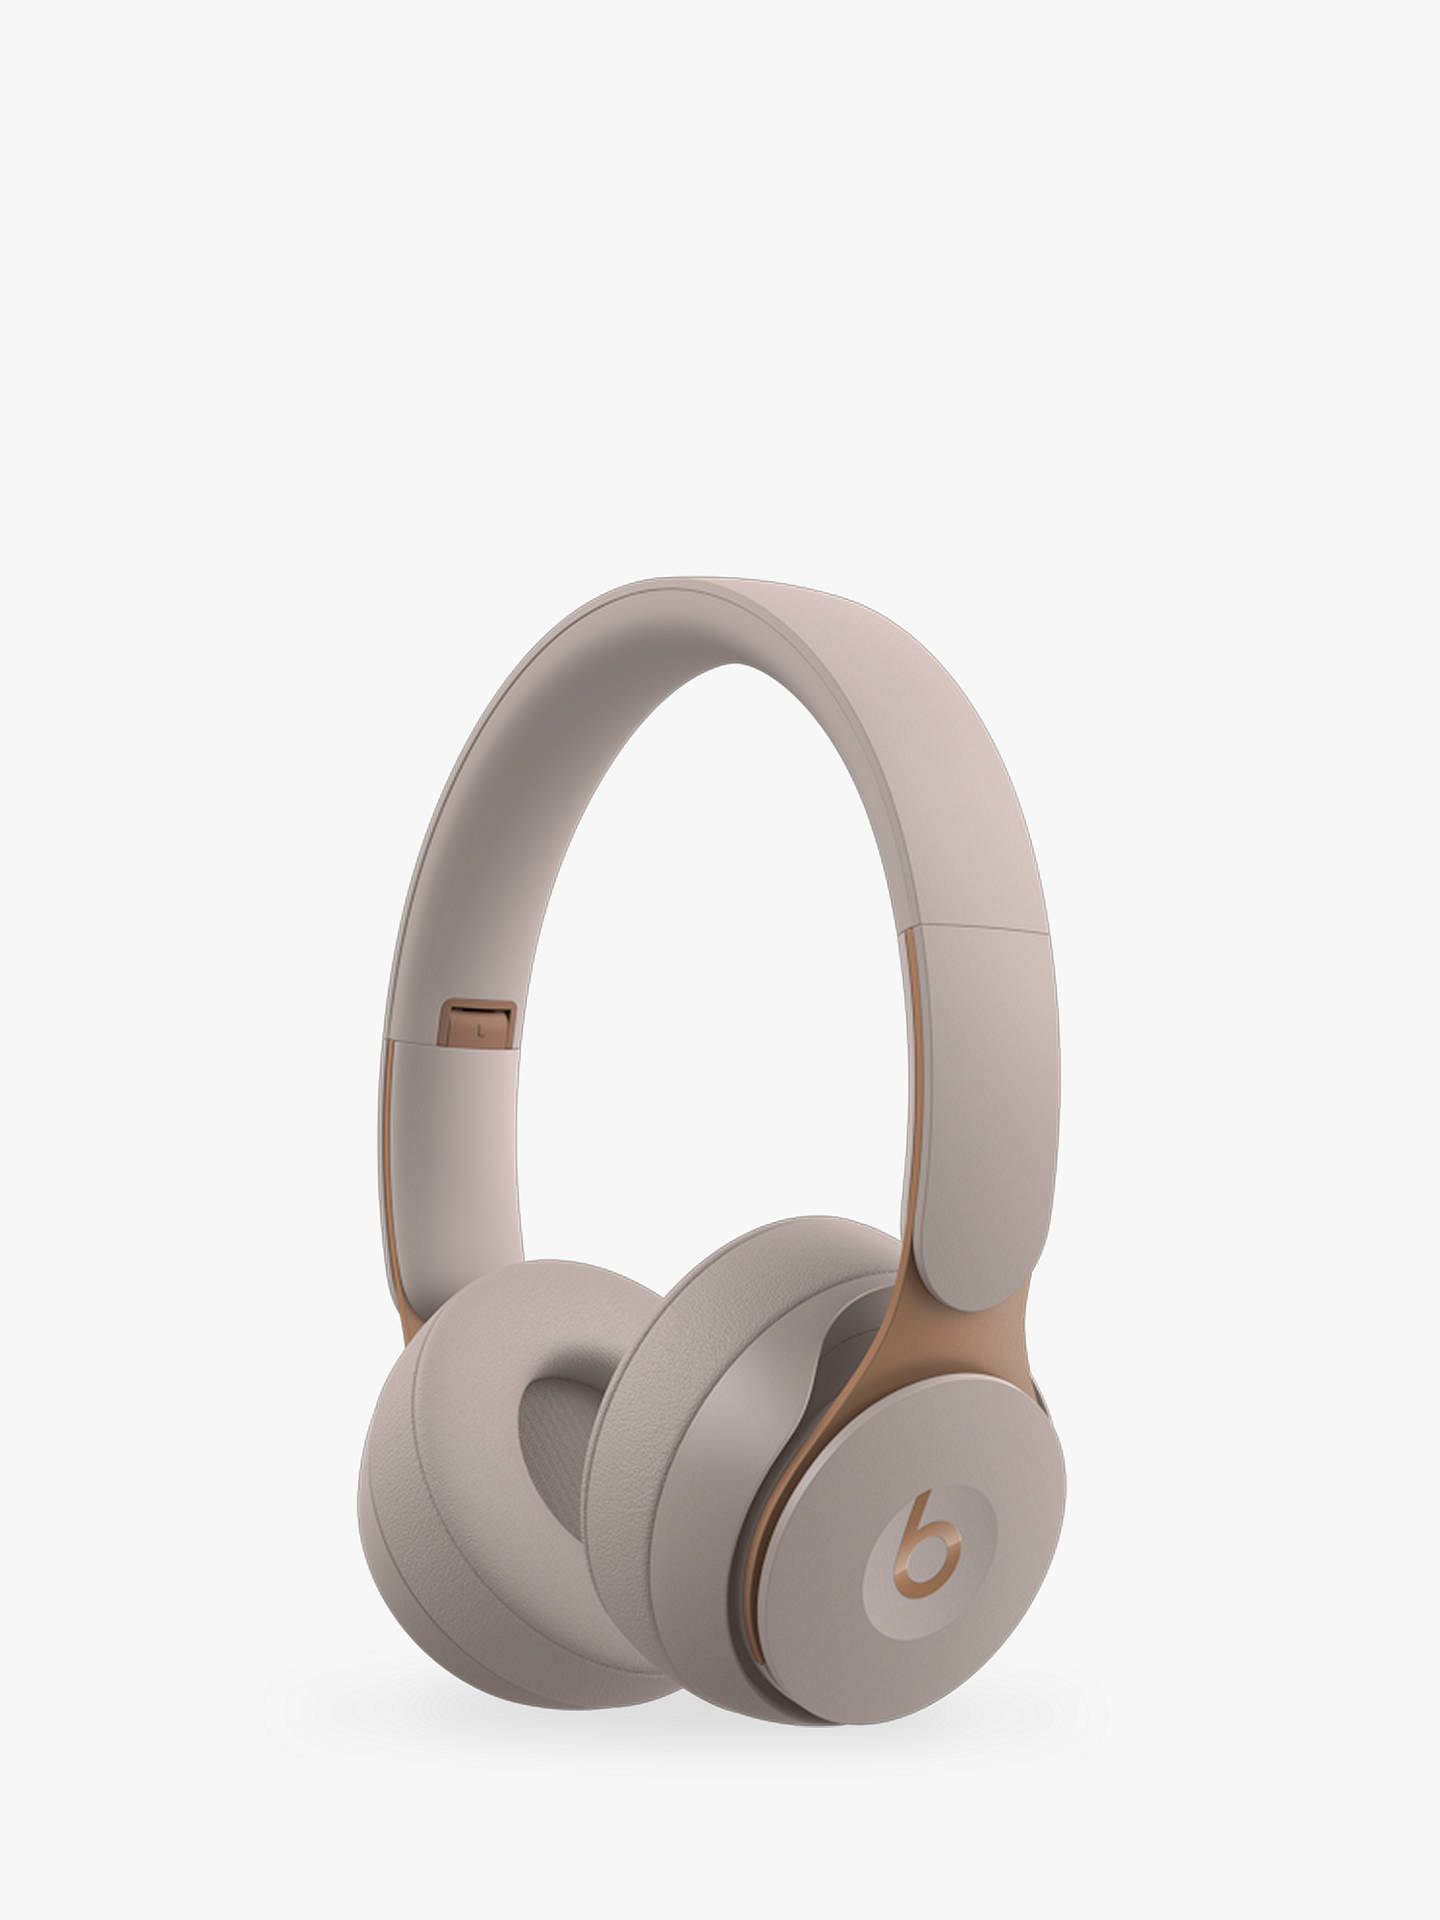 Buy Beats Solo Pro Wireless Bluetooth On-Ear Headphones with Active Noise Cancelling & Mic/Remote, Grey Online at johnlewis.com